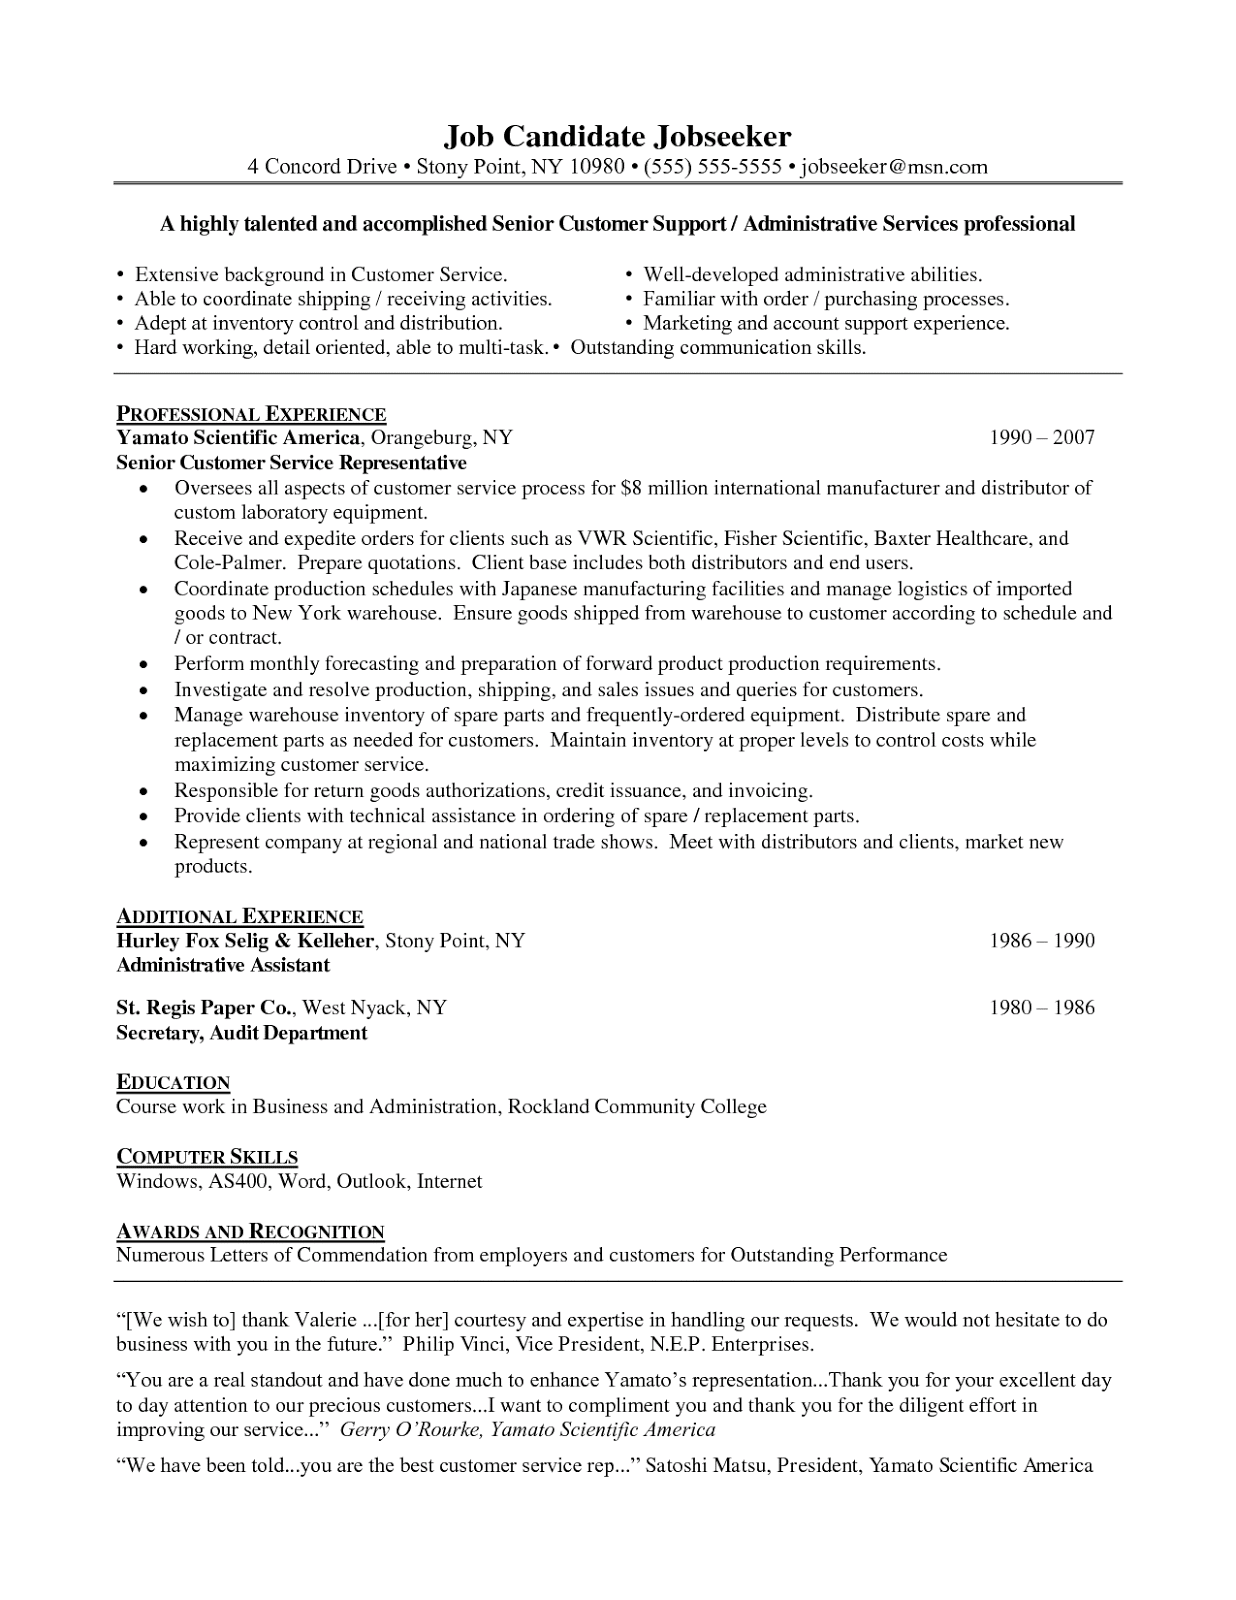 resumes for customer service objective statement for a customer